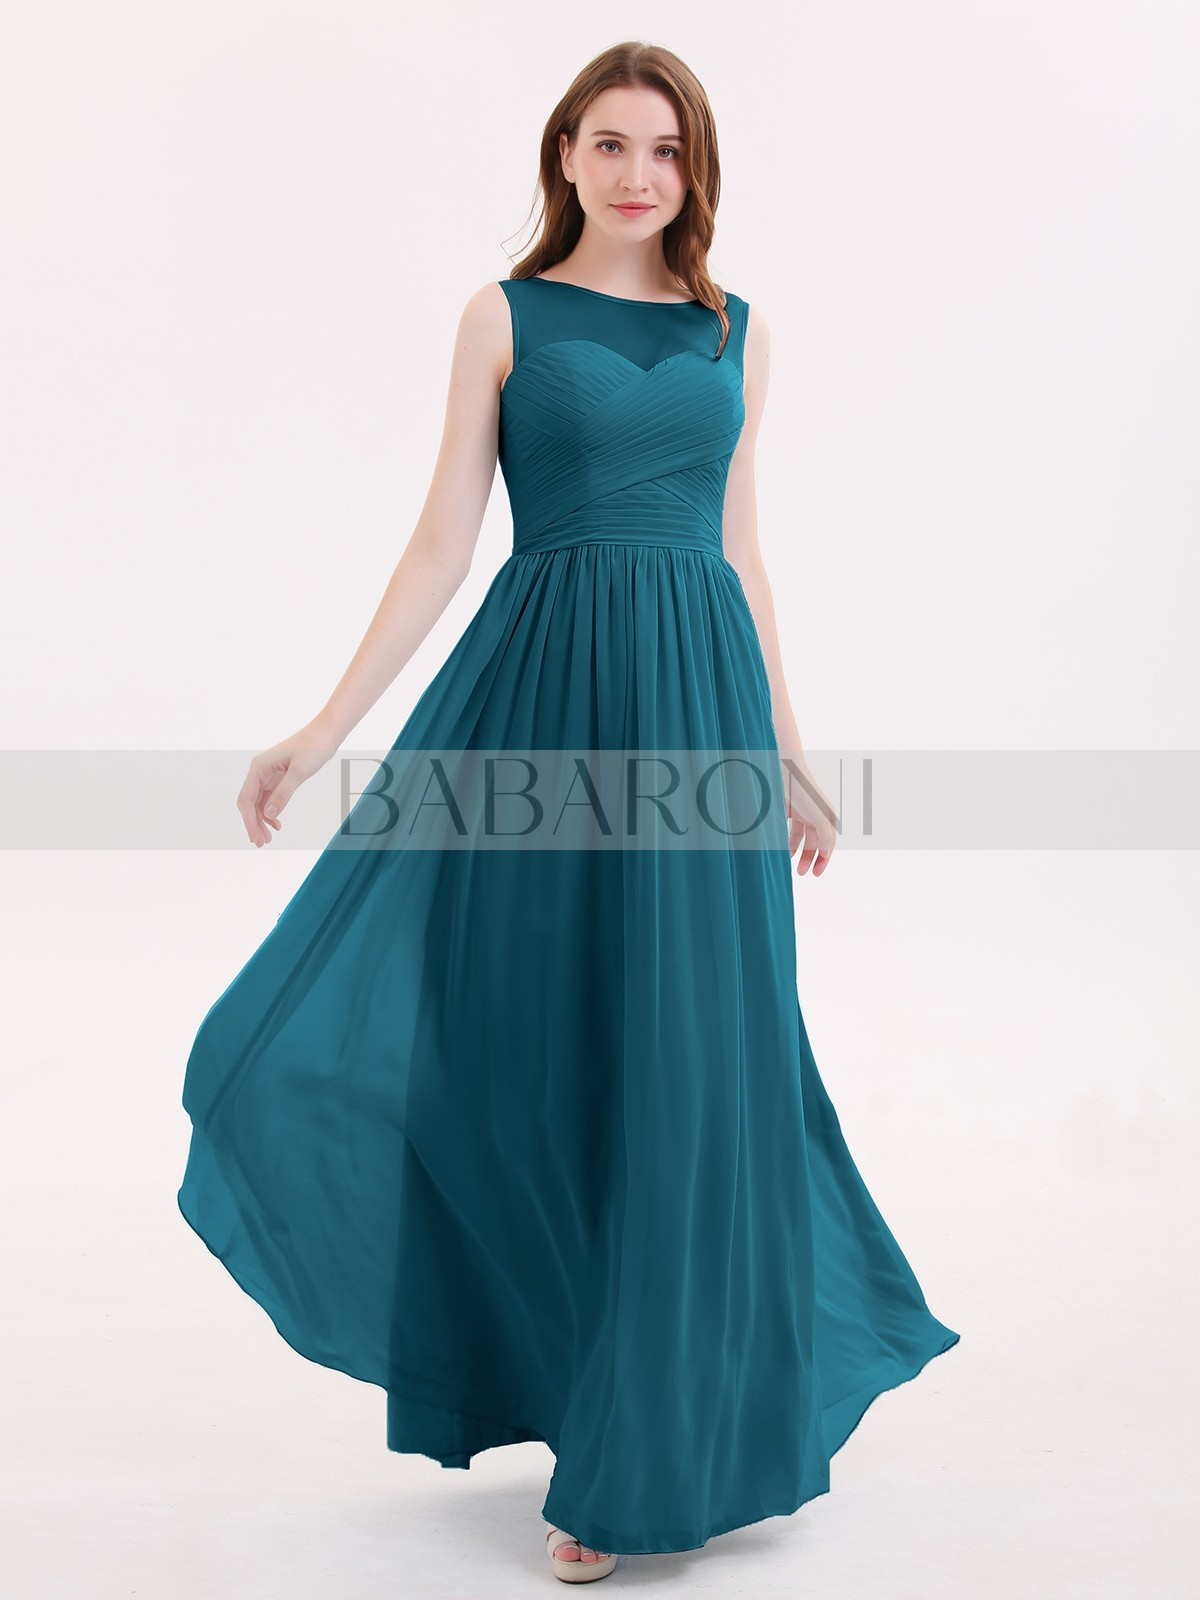 cbd76edfa63 A-line Chiffon Lilac Zipper Pleated Floor-length Illusion Sleeveless  Bridesmaid Dresses. Loading zoom